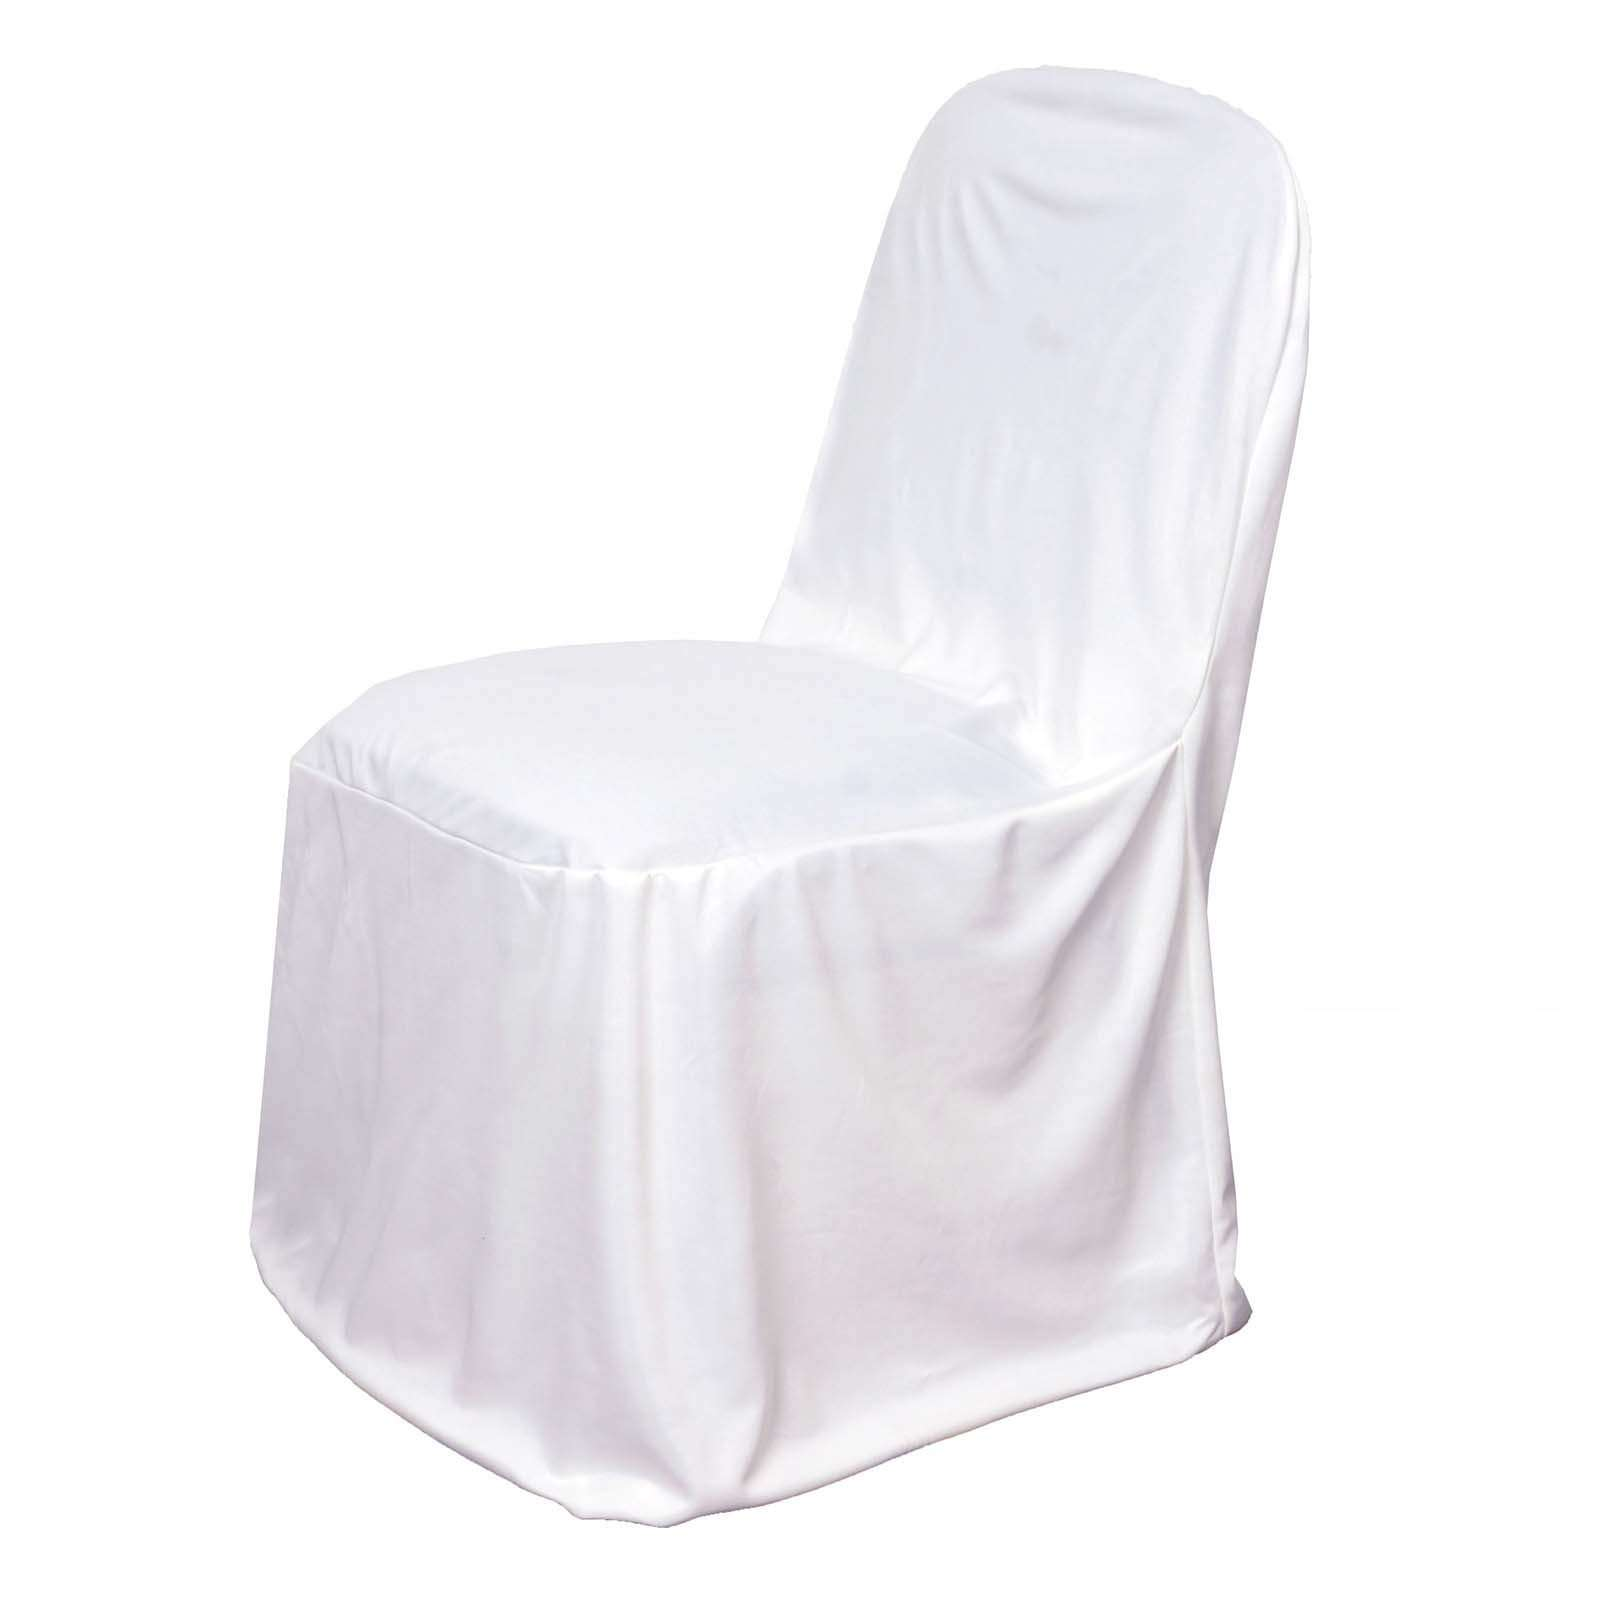 Amazing White Stretch Scuba Chair Cover For Banquet Wedding Party Decorations Chaircoverfactory Pabps2019 Chair Design Images Pabps2019Com